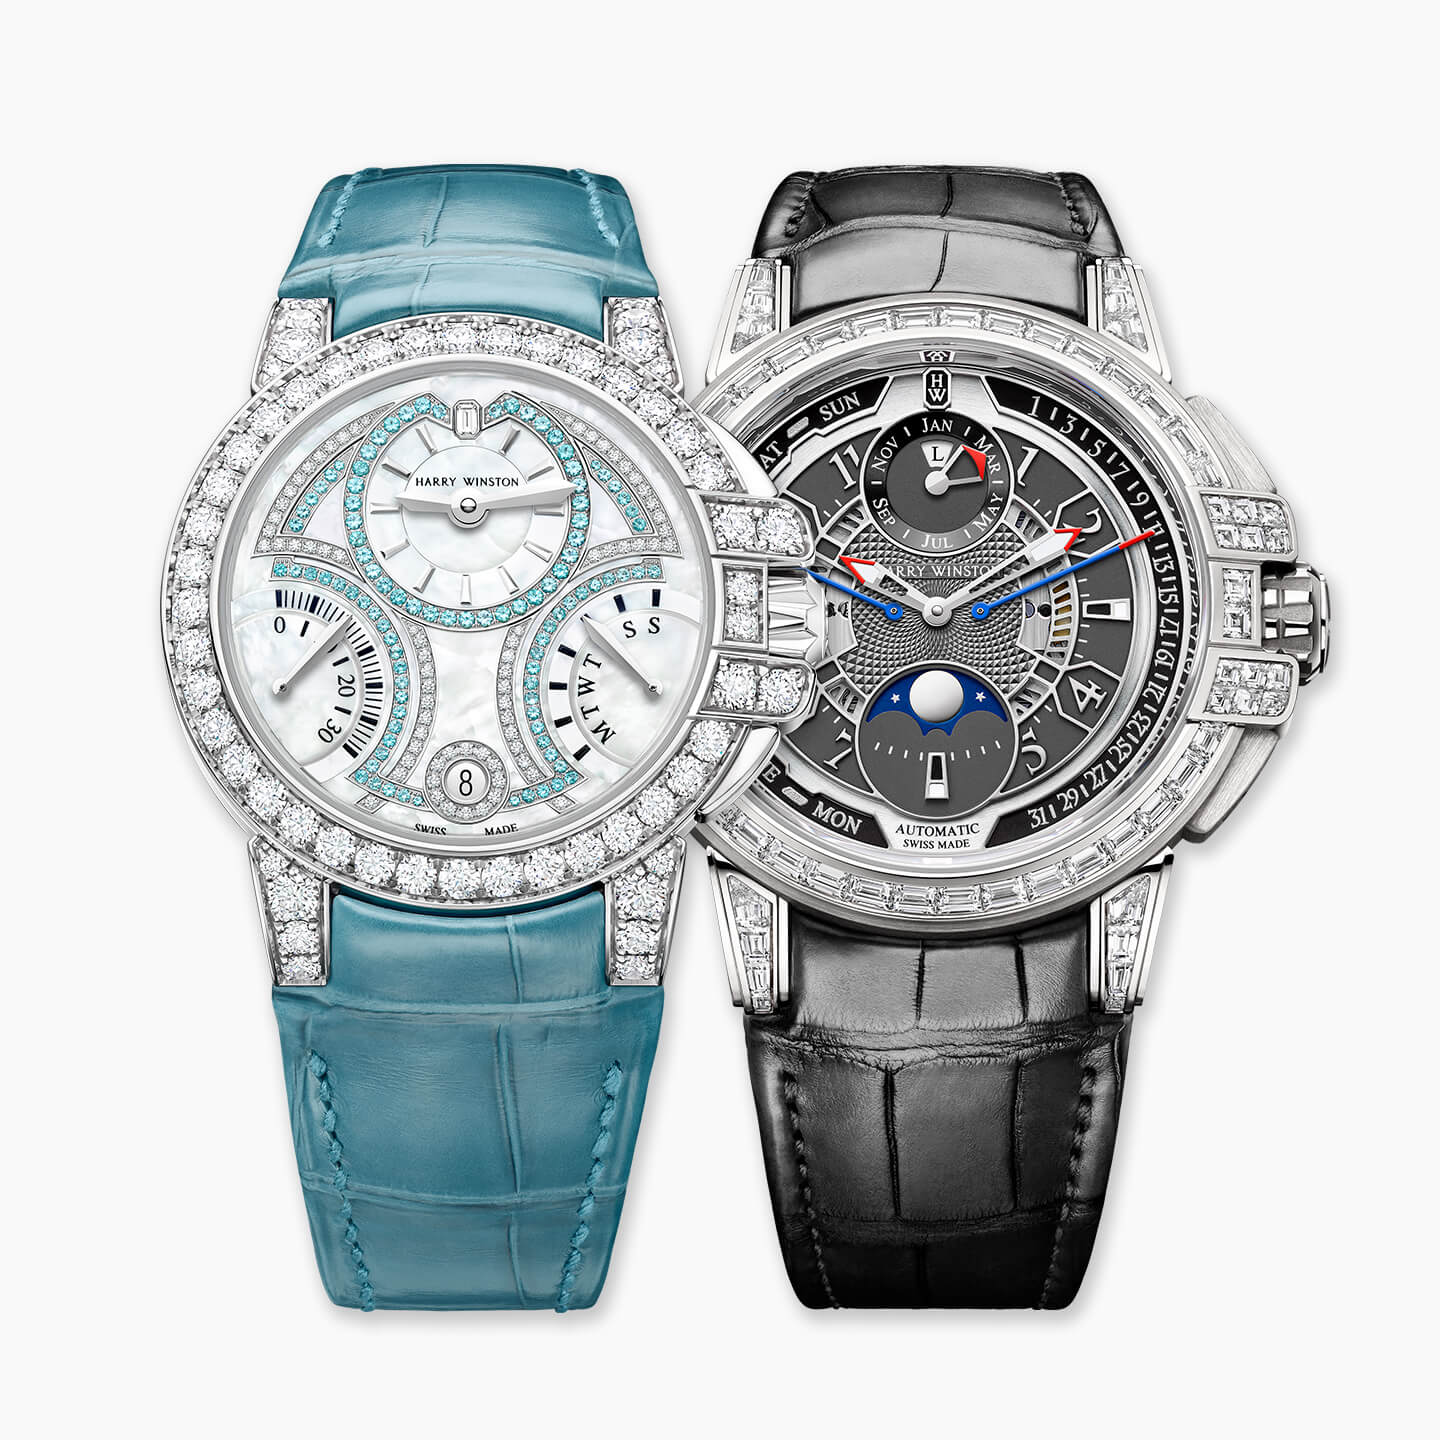 Harry Winston at Baselworld 2018